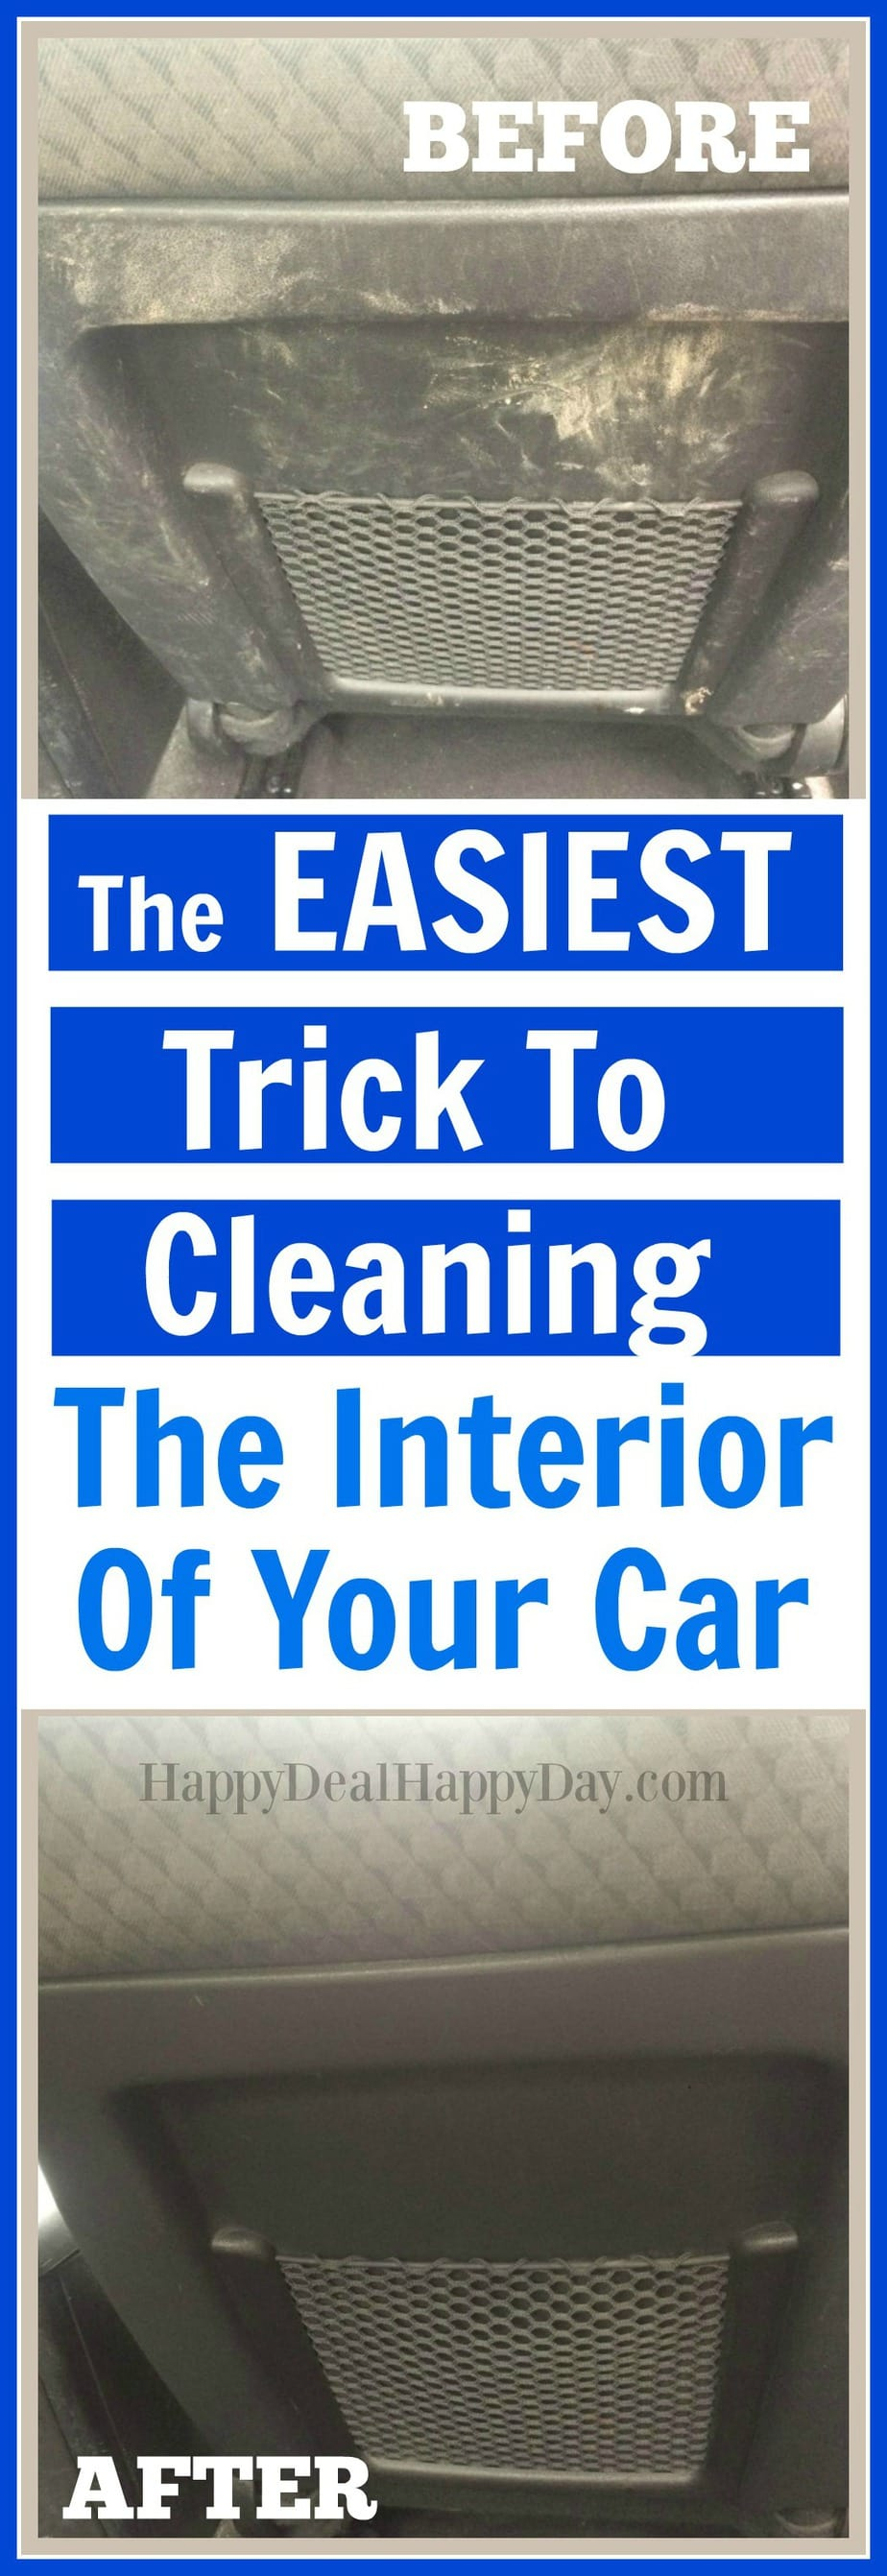 clean car hack how to clean the interior of your car in record time without spray cleaners or. Black Bedroom Furniture Sets. Home Design Ideas